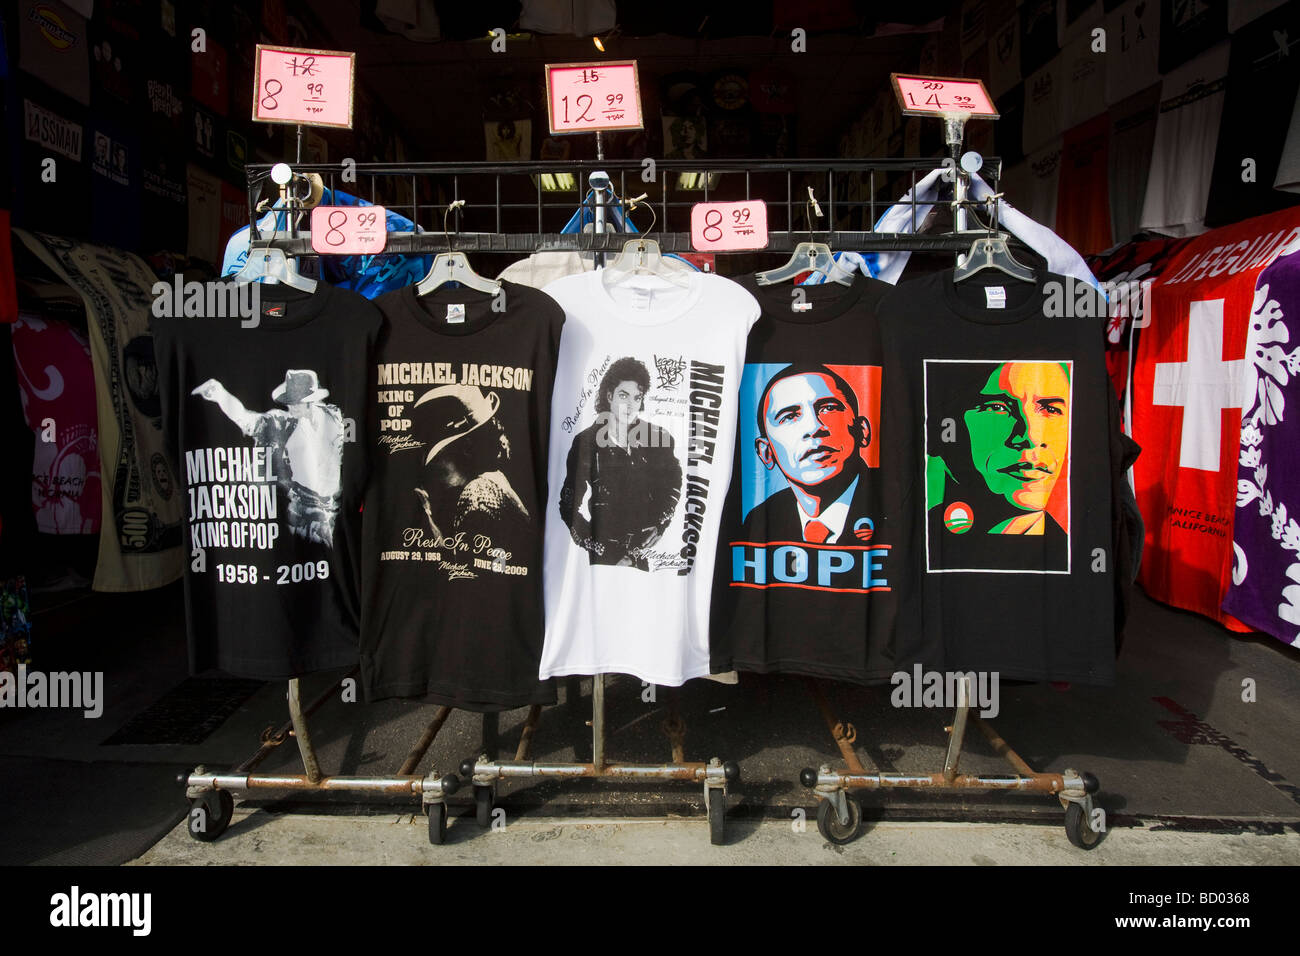 Barack Obama and Michael Jackson Tee Shirts for sale Venice Beach Los Angeles County United States of America - Stock Image